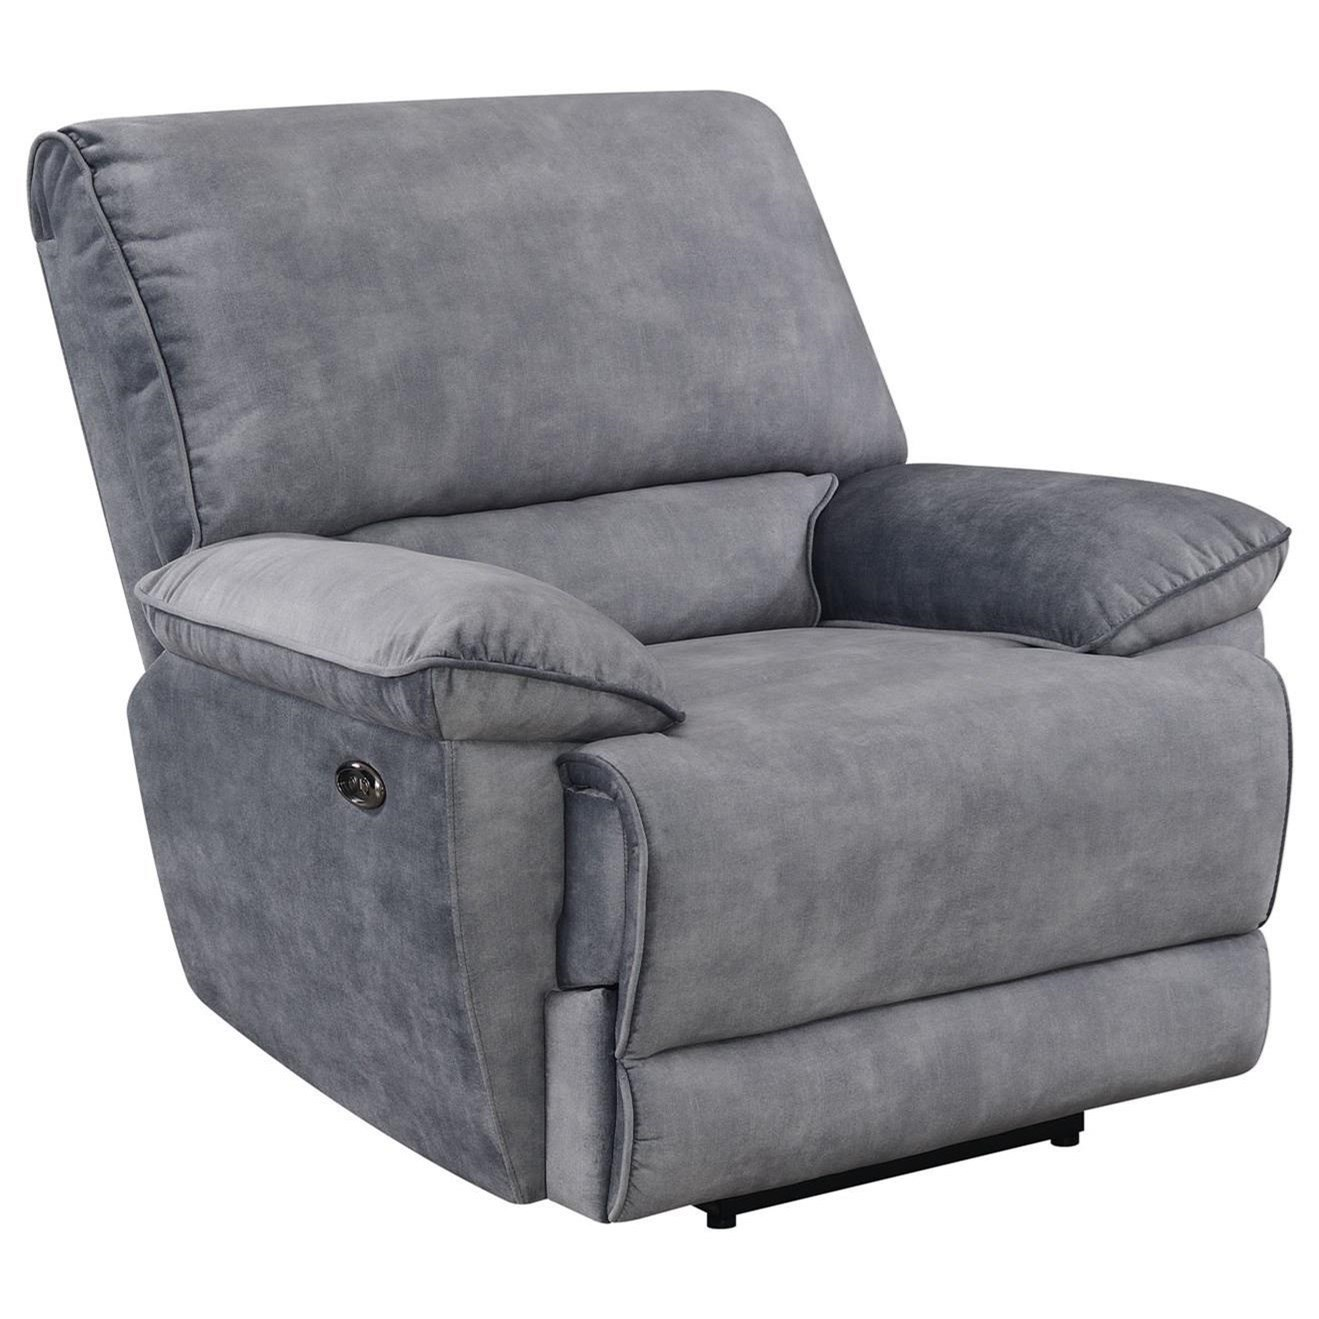 Simone Power Recliner by Steve Silver at Darvin Furniture